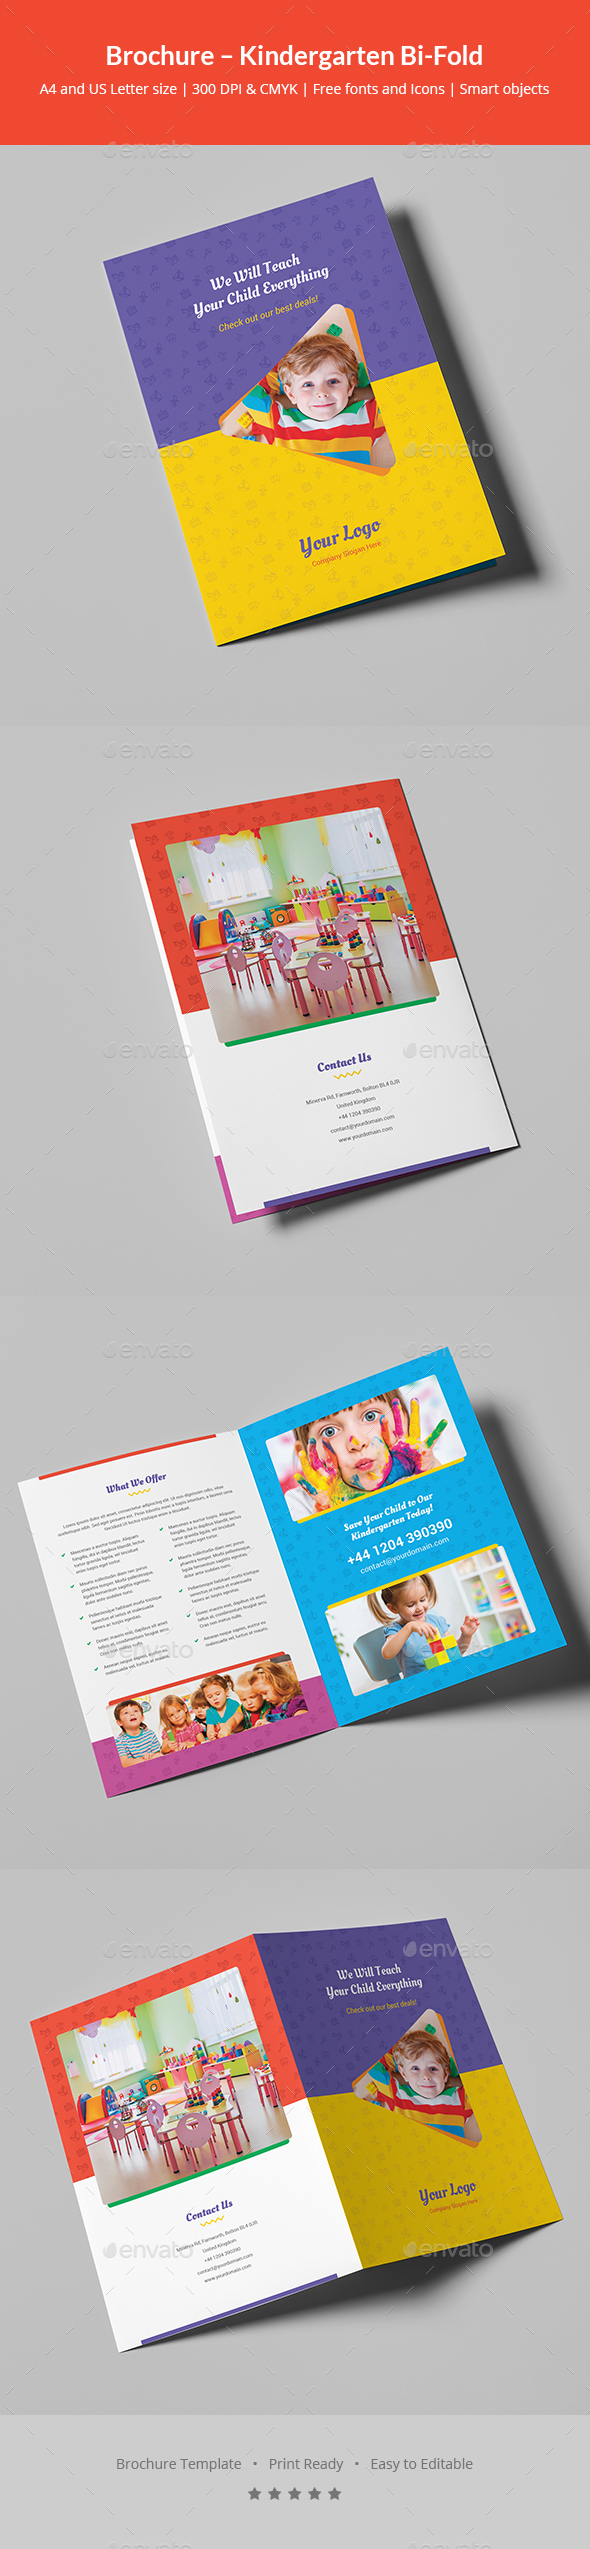 GraphicRiver Brochure Kindergarten Bi-Fold 21027328